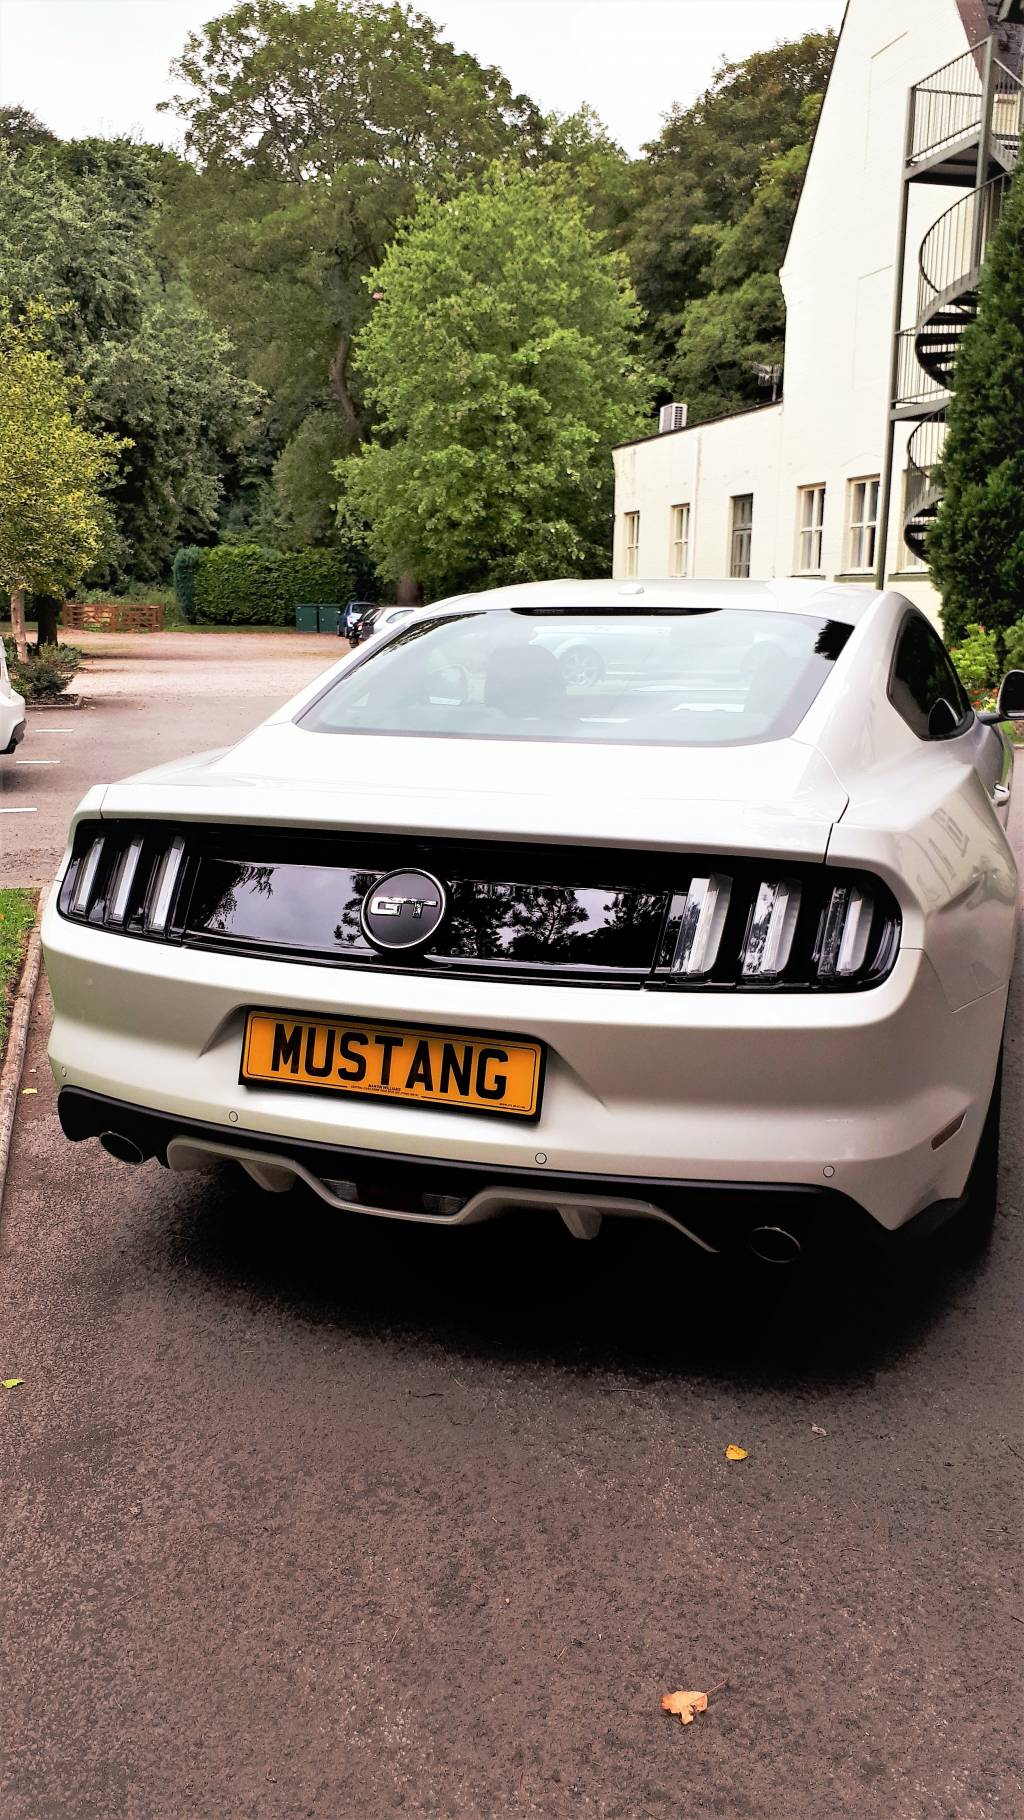 Image of 2018 white Ford Mustang in the hotel grounds